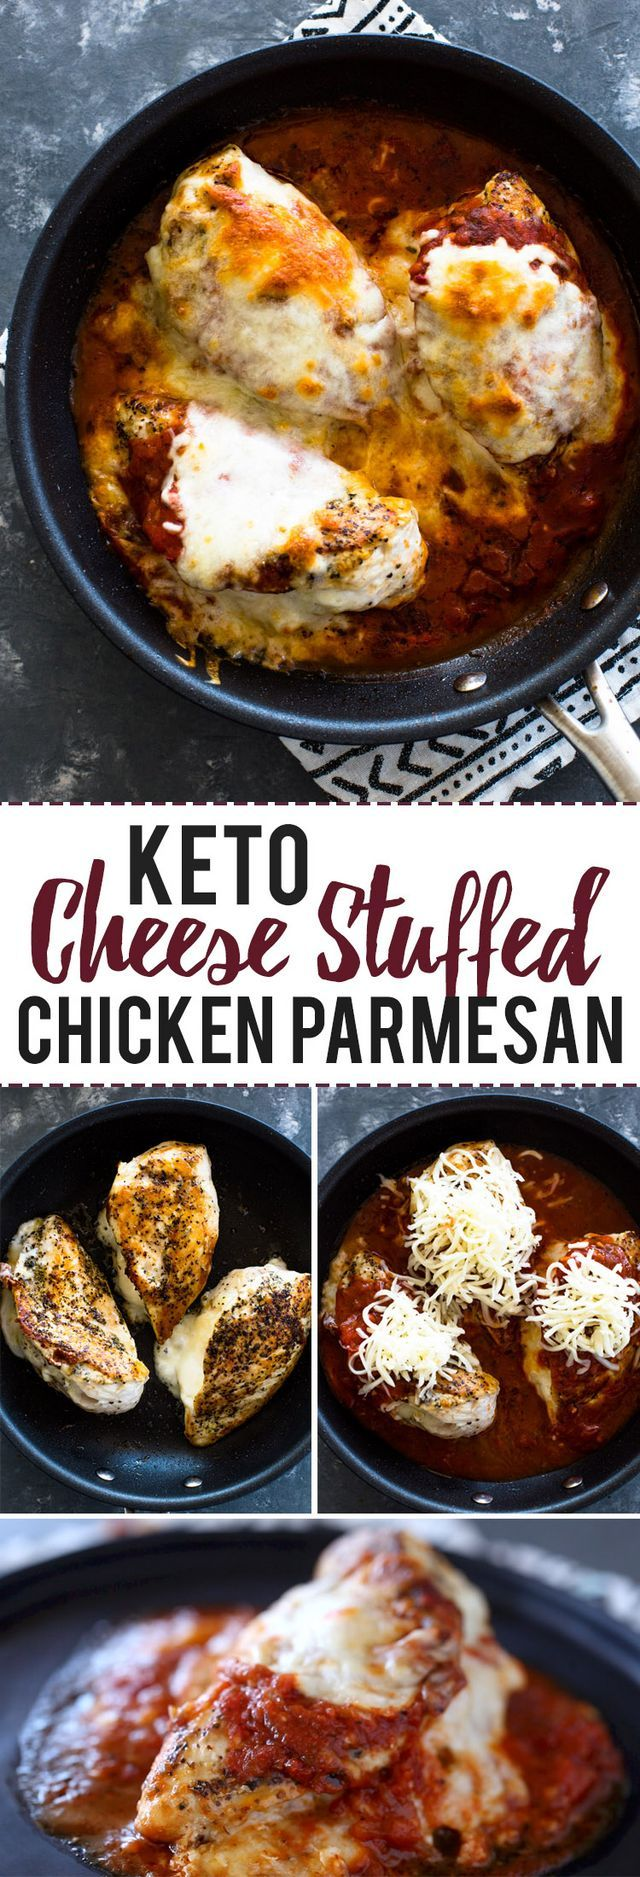 Keto Stuffed Chicken Parmesan (Gimme Delicious)